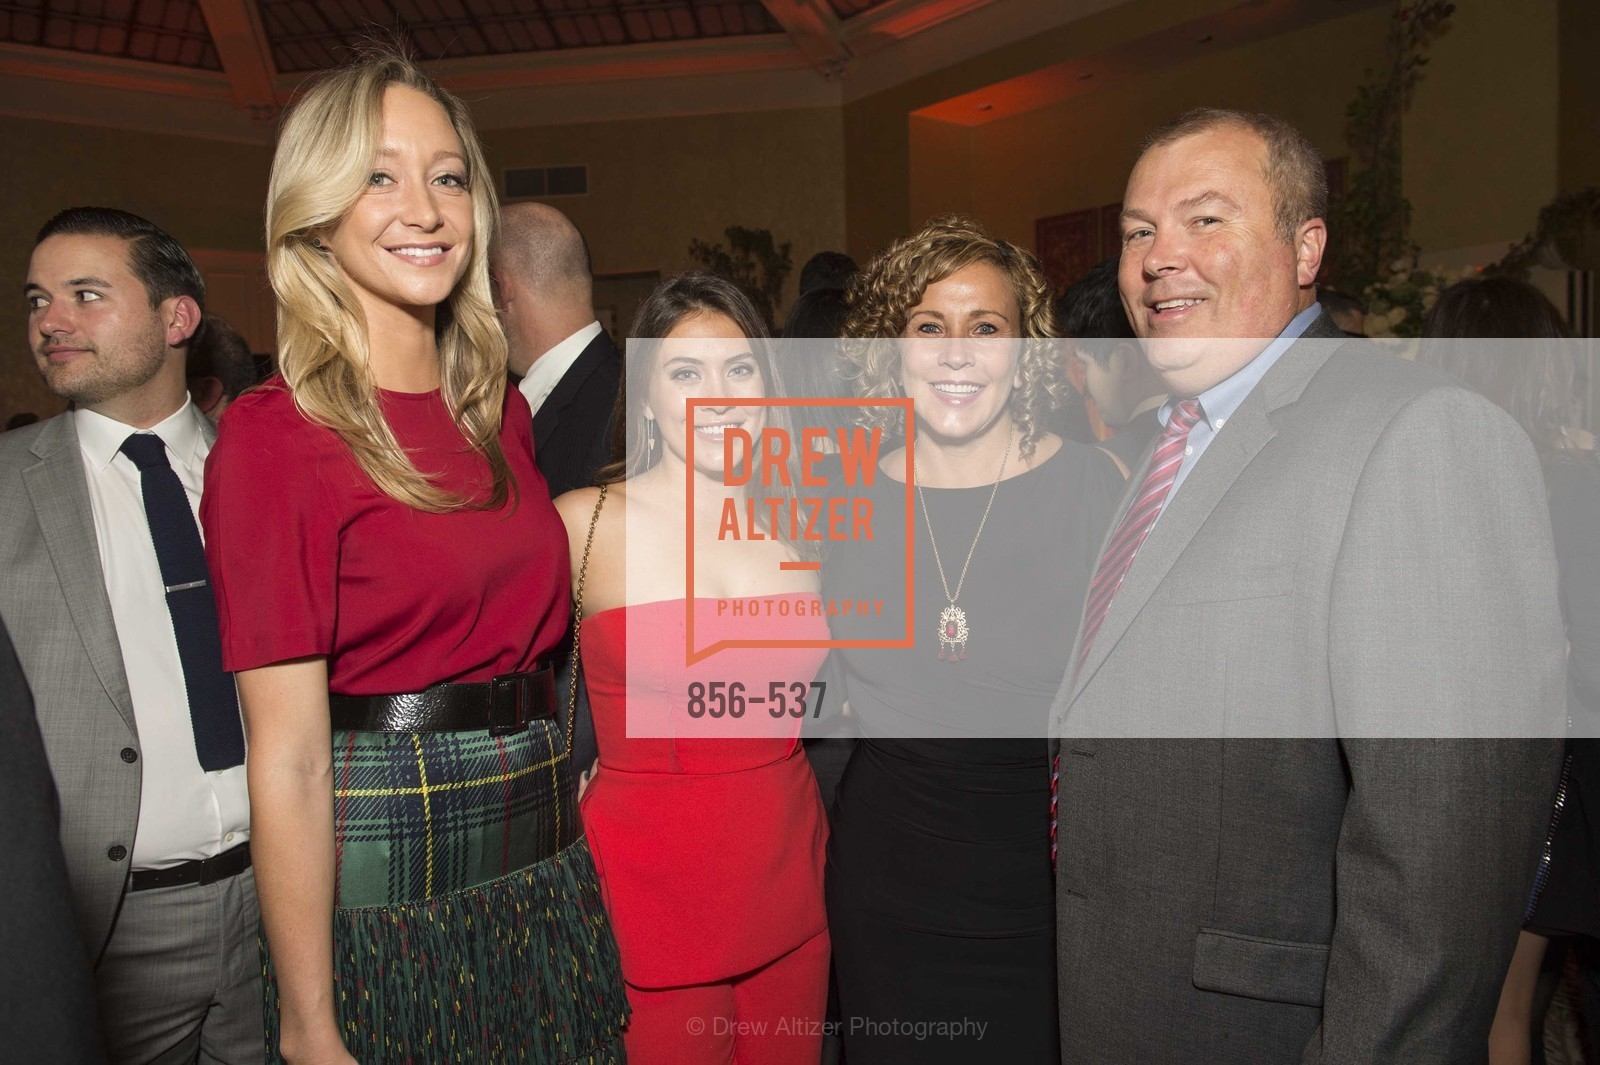 Makayla Smith, Madison Smith, Connie Smith, Derek Smith, TOP OF THE MARK'S 75TH Anniversary Party, US, November 7th, 2014,Drew Altizer, Drew Altizer Photography, full-service agency, private events, San Francisco photographer, photographer california